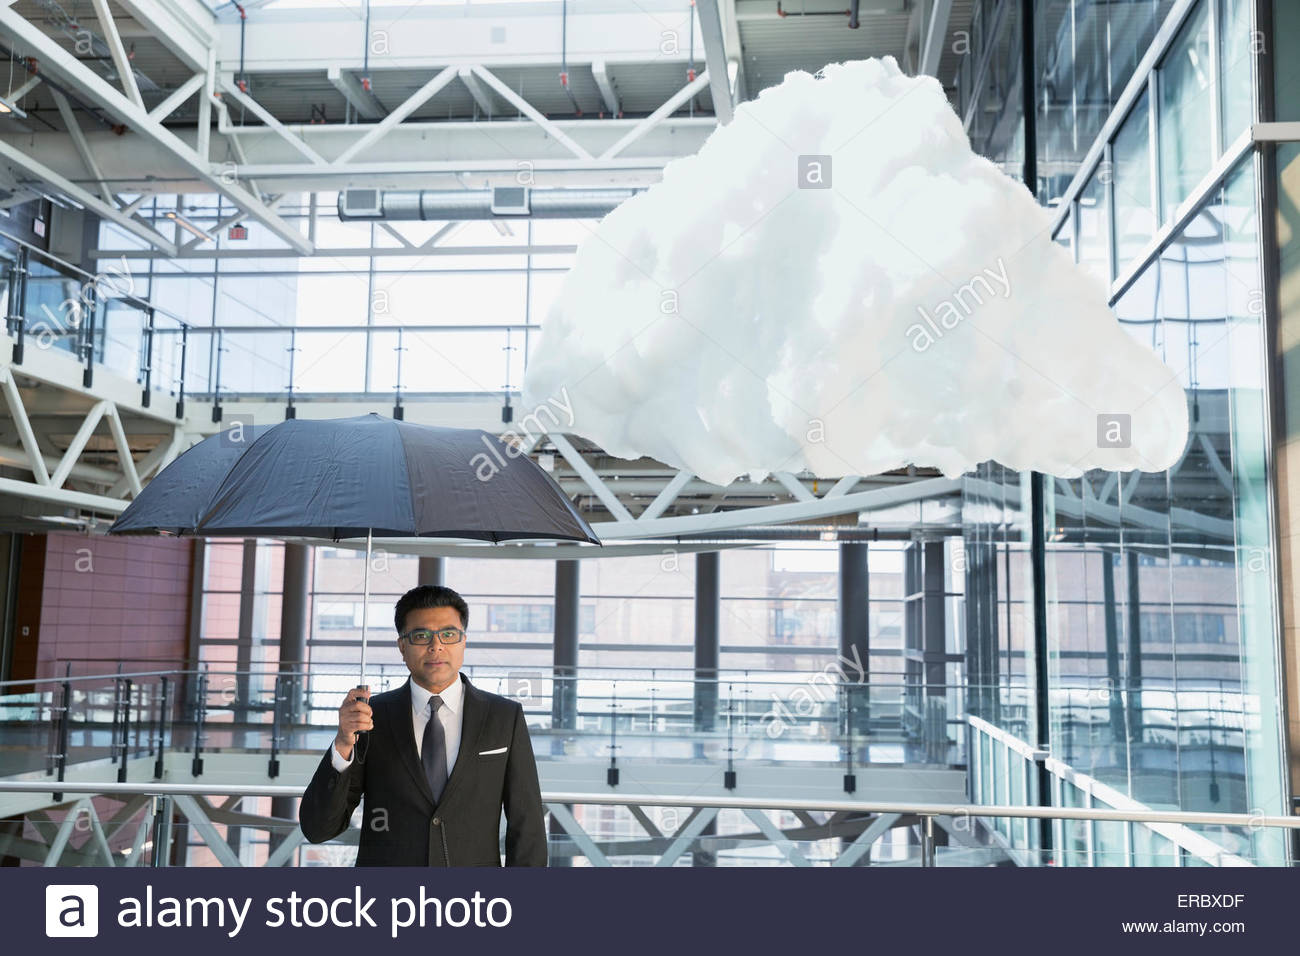 Businessman Portrait avec parapluie sous cloud dans l'atrium Photo Stock